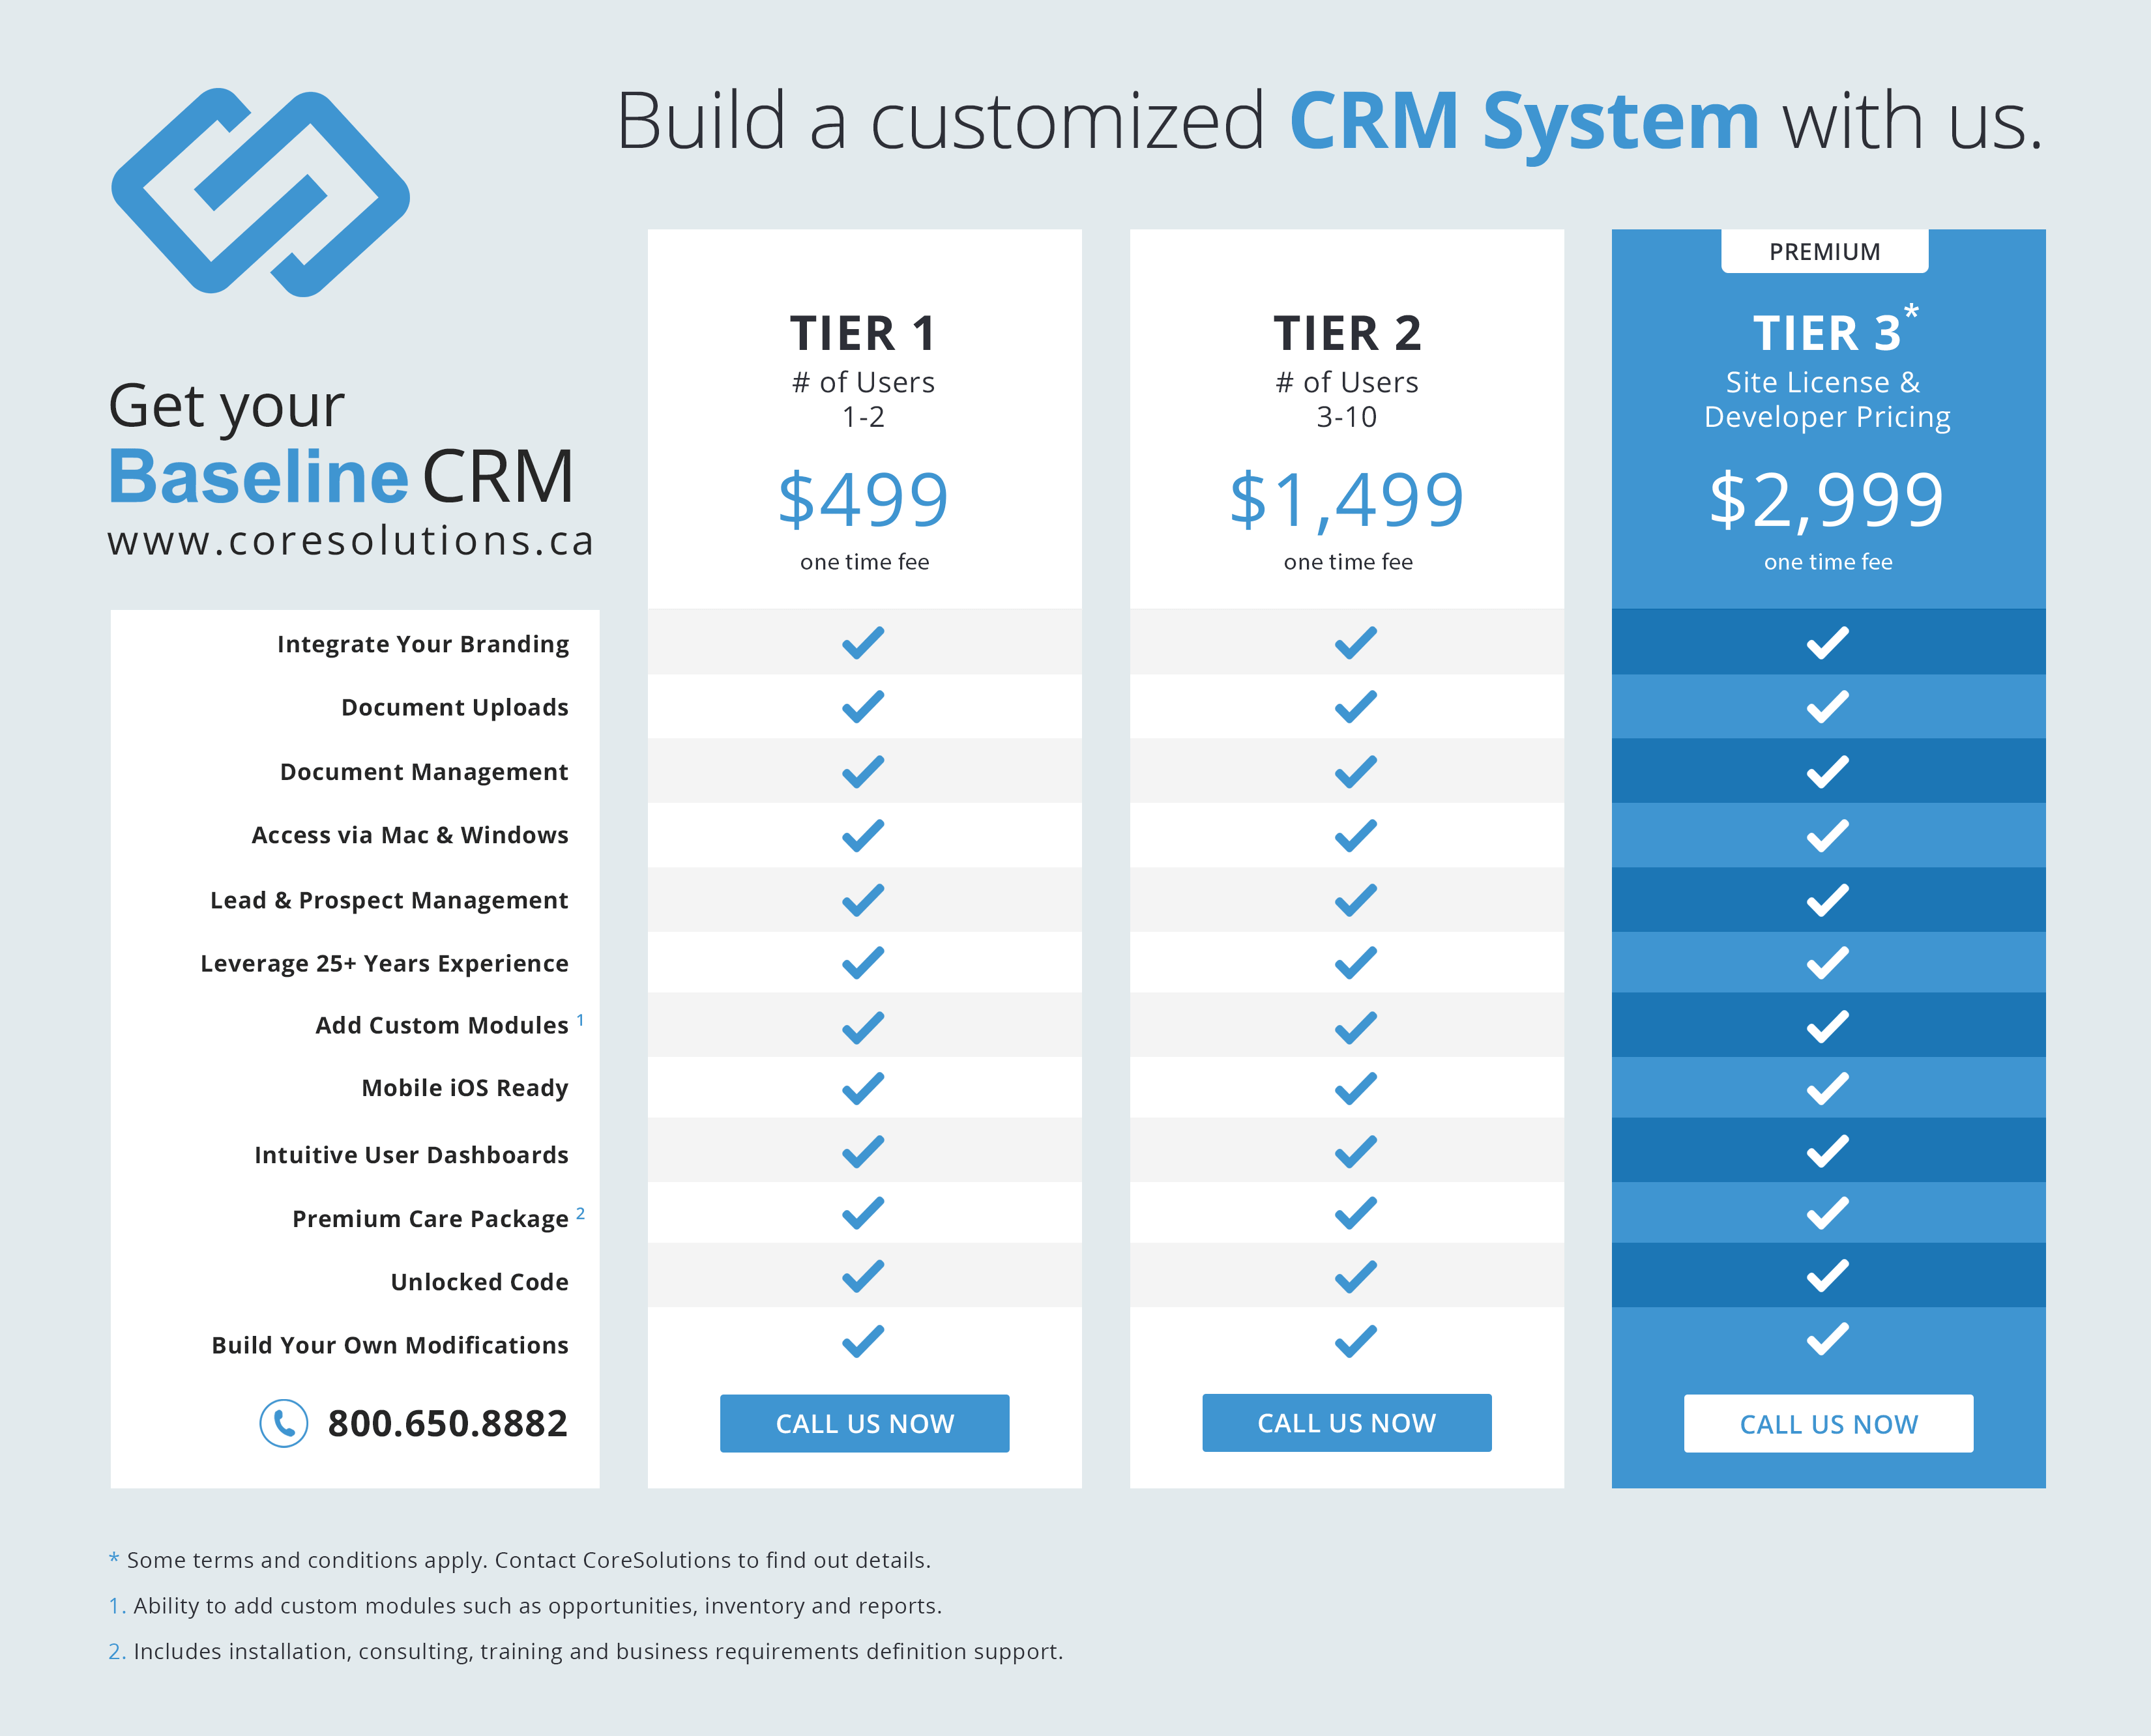 Pricing comparison for the Baseline CRM